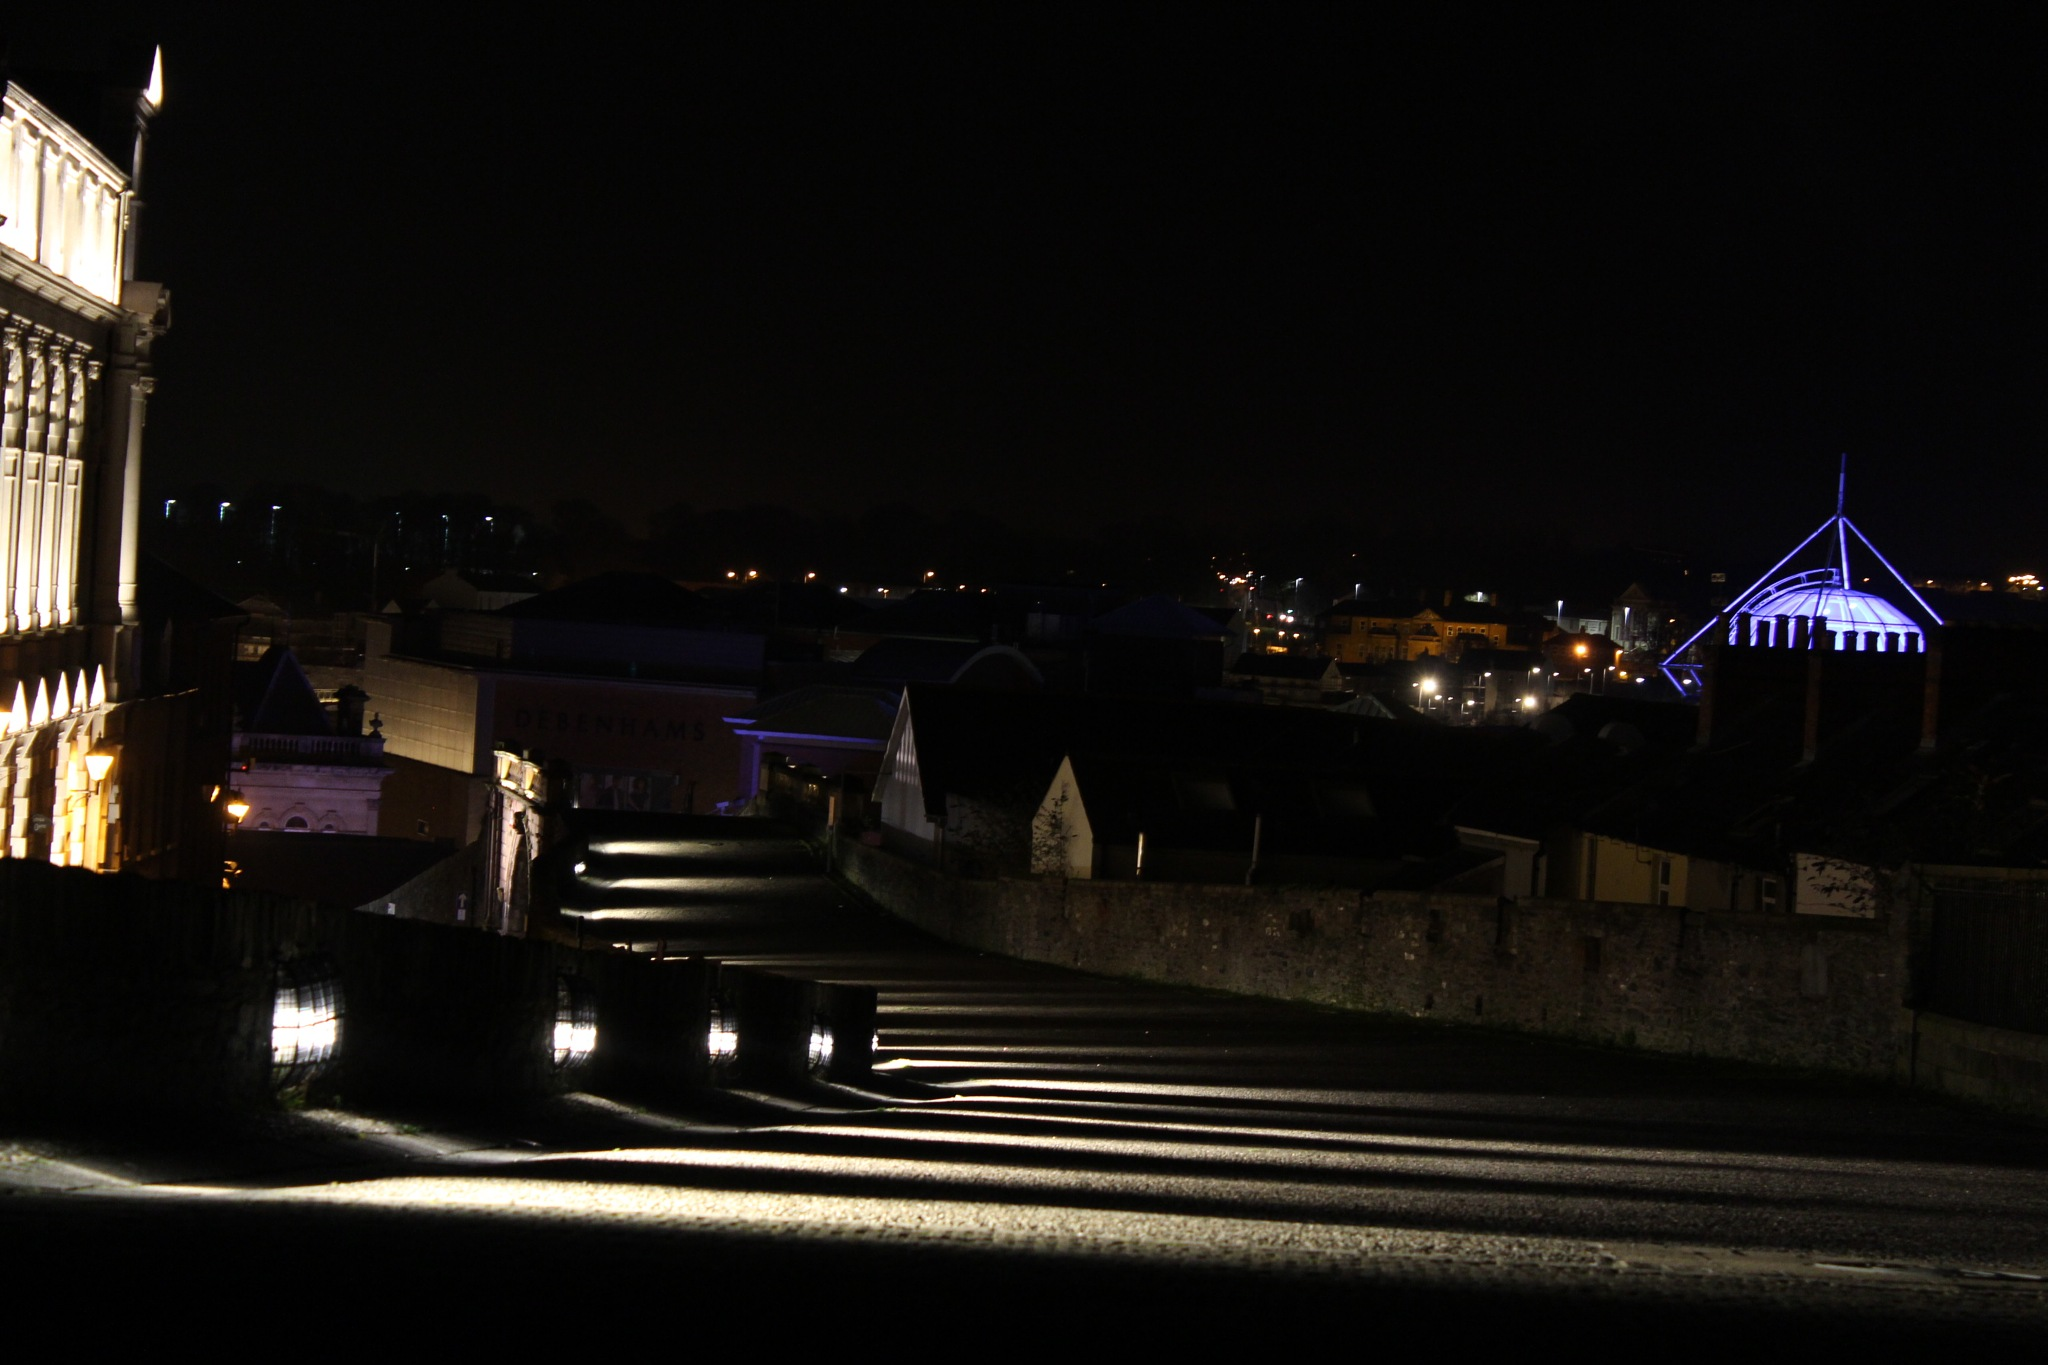 City walls lit up at night by FrankieS